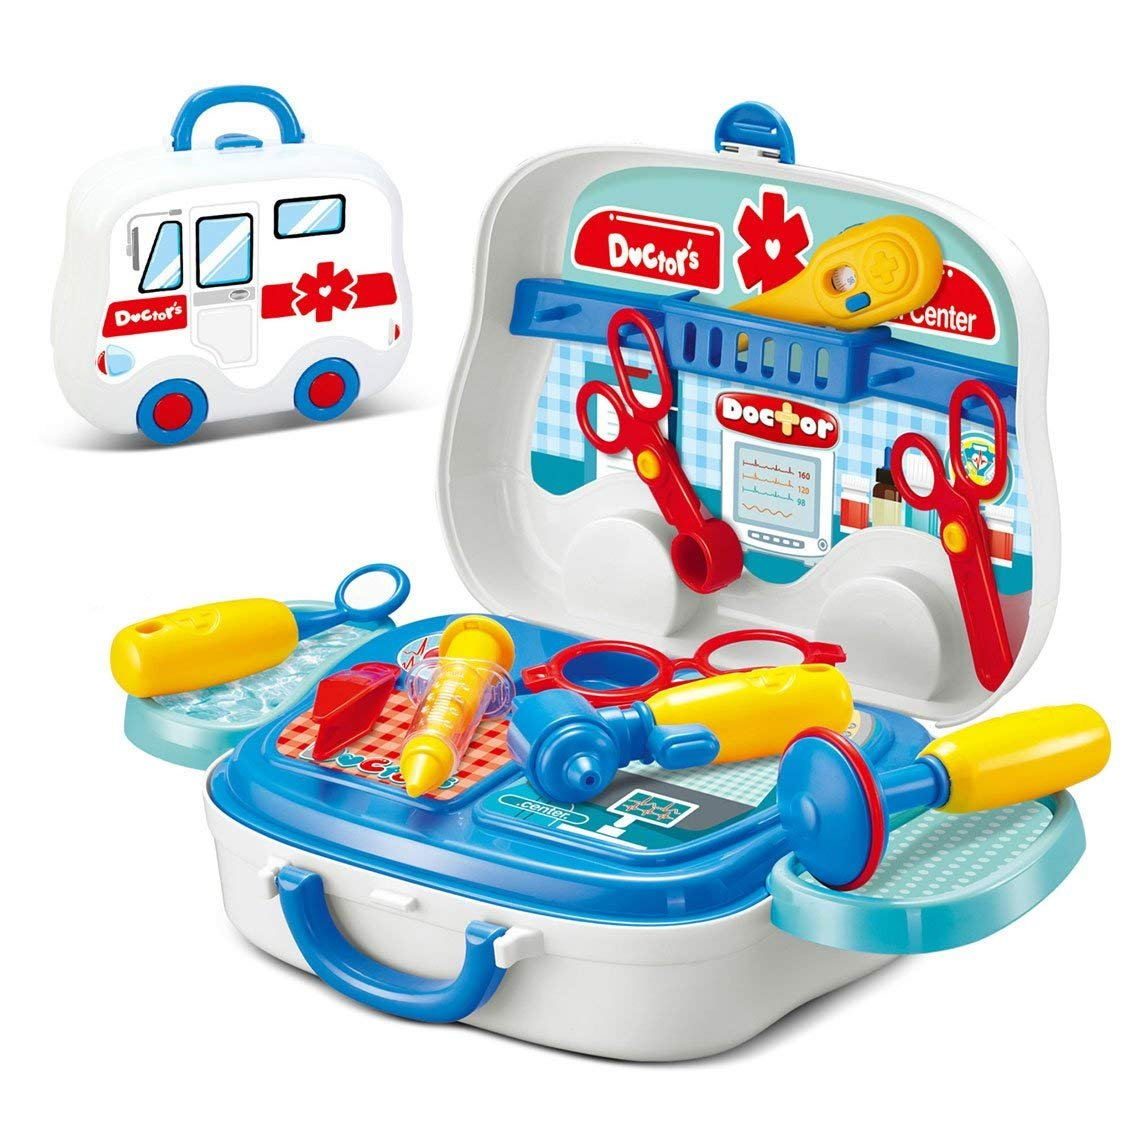 JEJA Doctor Playsets 14pcs Doctor Medical Tools Pretend Play Toy with Portable Suitcase for Kids Boys Girls Age 3 Years and Up